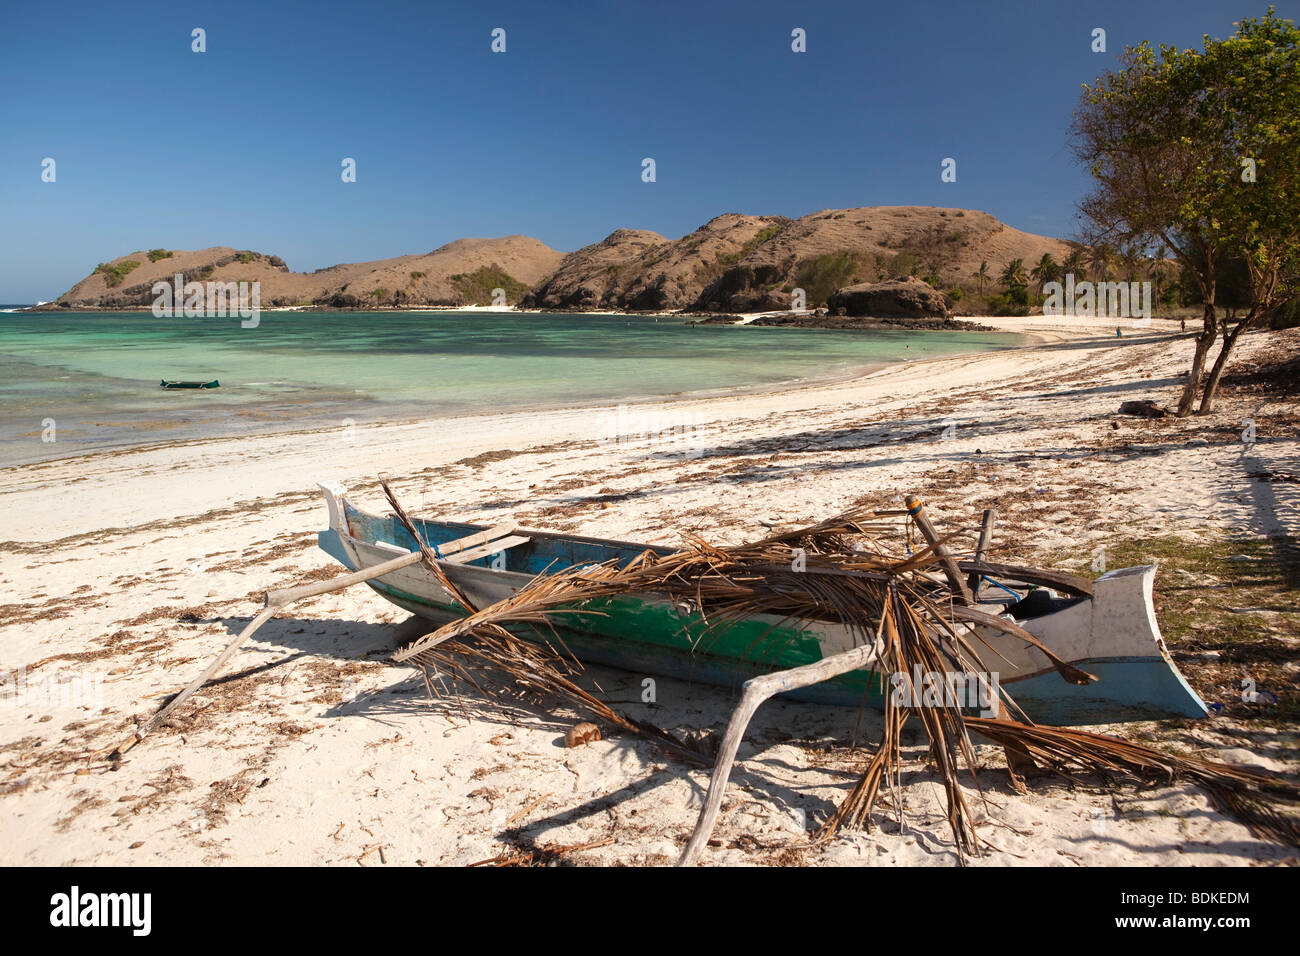 Indonesia, Lombok, Tanjung, beach, fishermen's dugout boat shaded with palm leaves - Stock Image